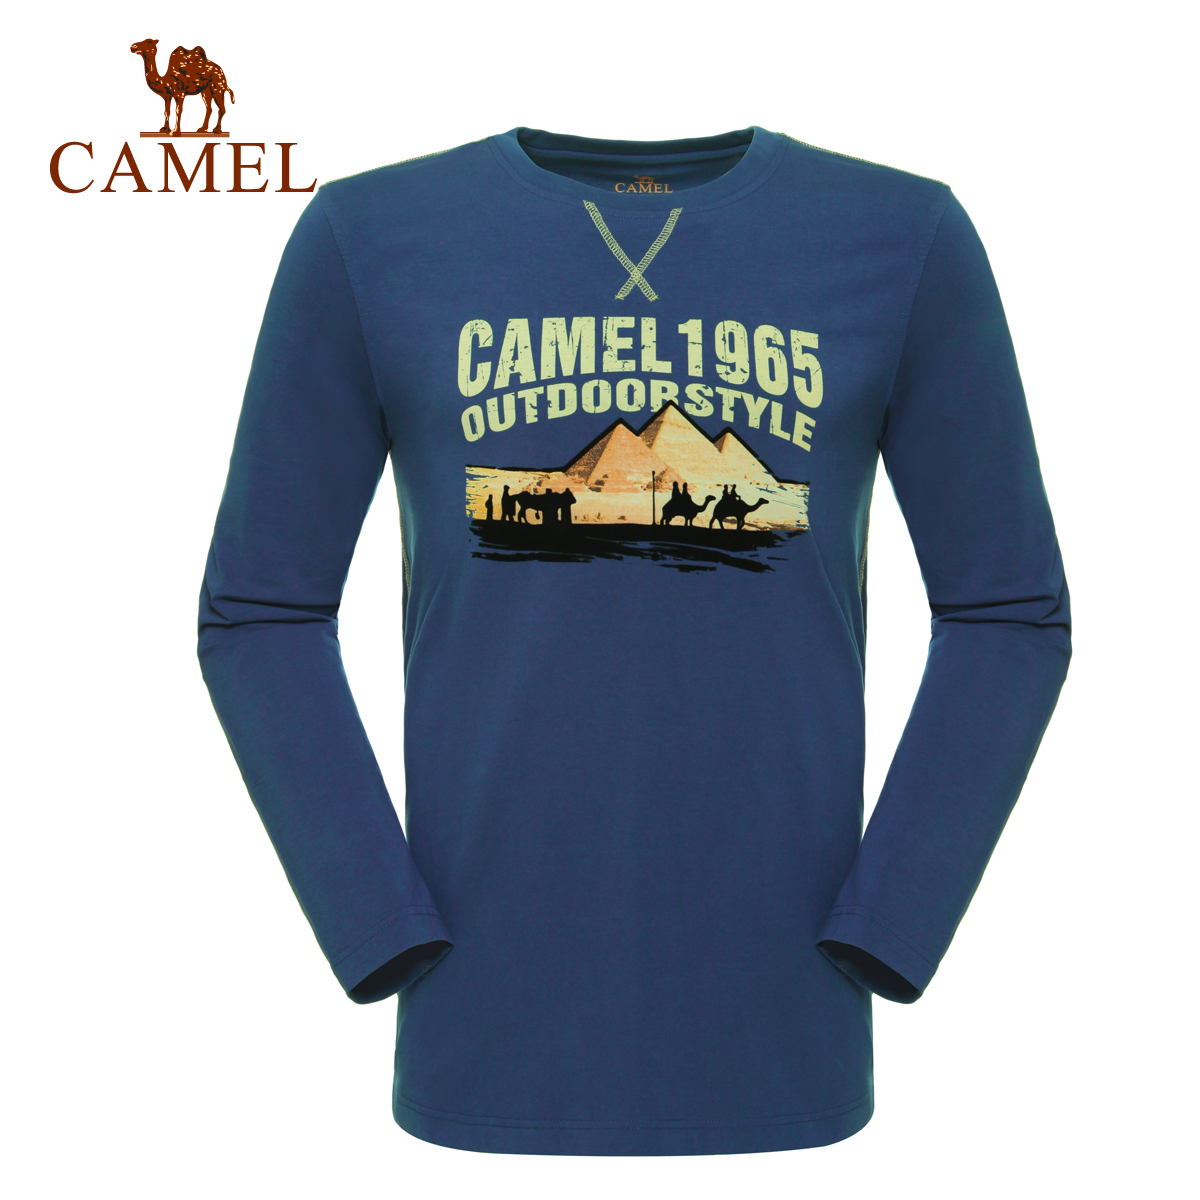 Camel camel outdoor leisure clothing men's everyday foot leisure simple round neck long sleeve t-shirt cotton t